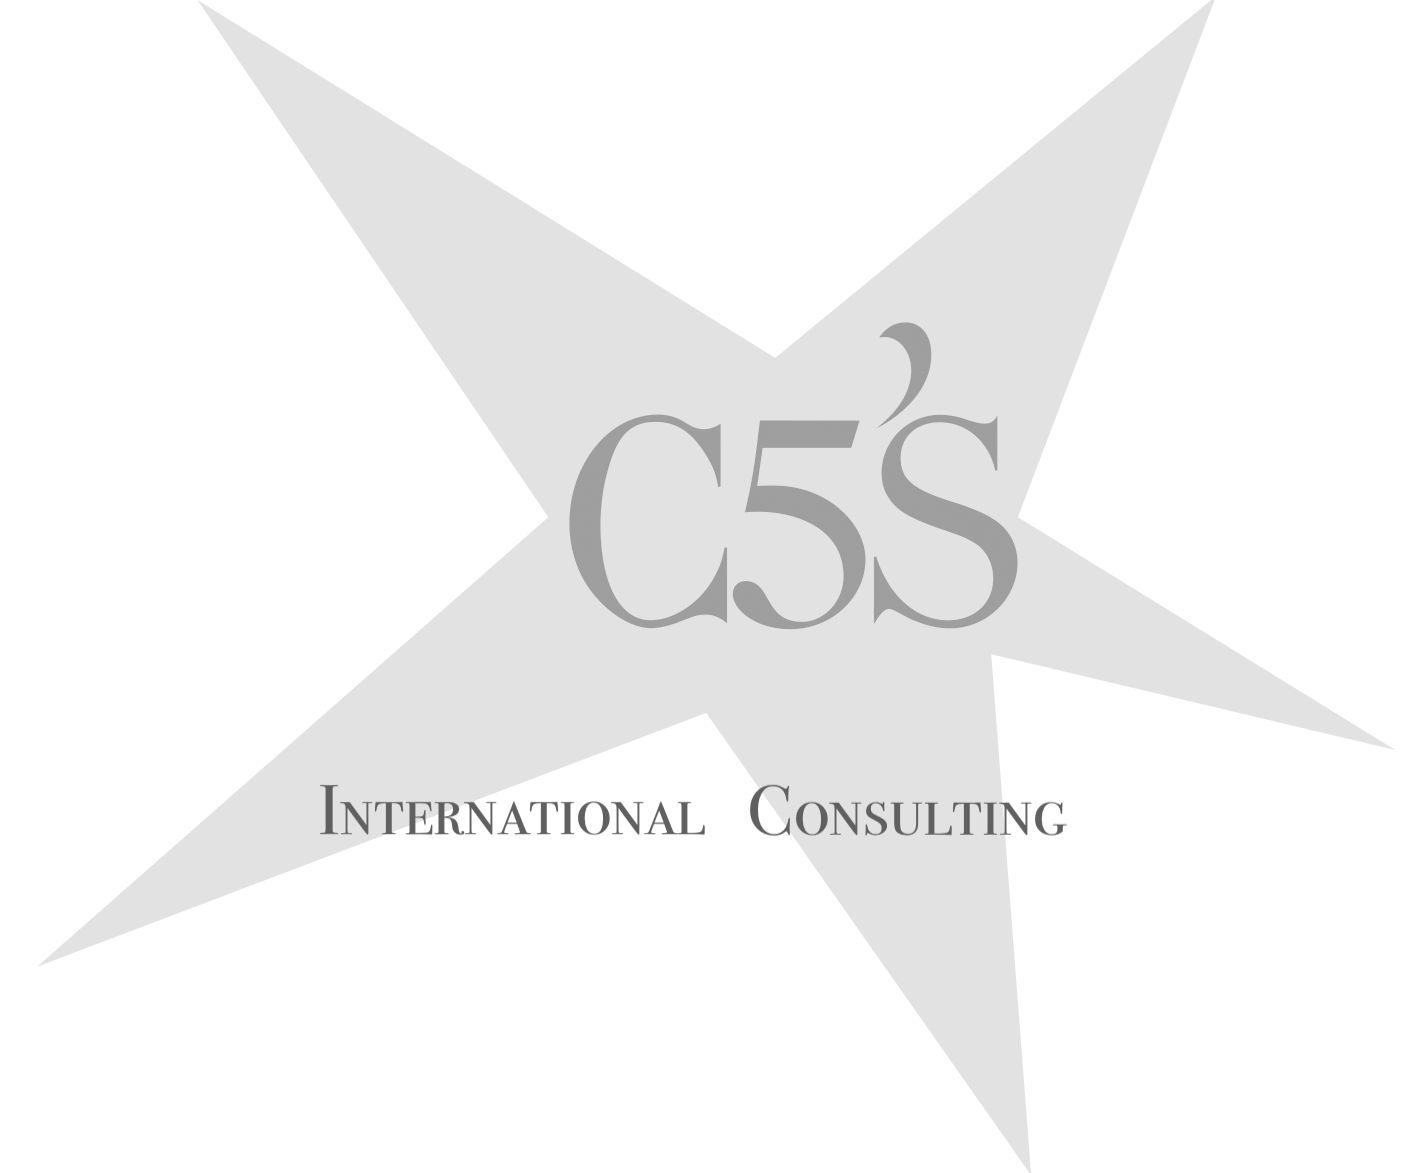 C5S International Consulting